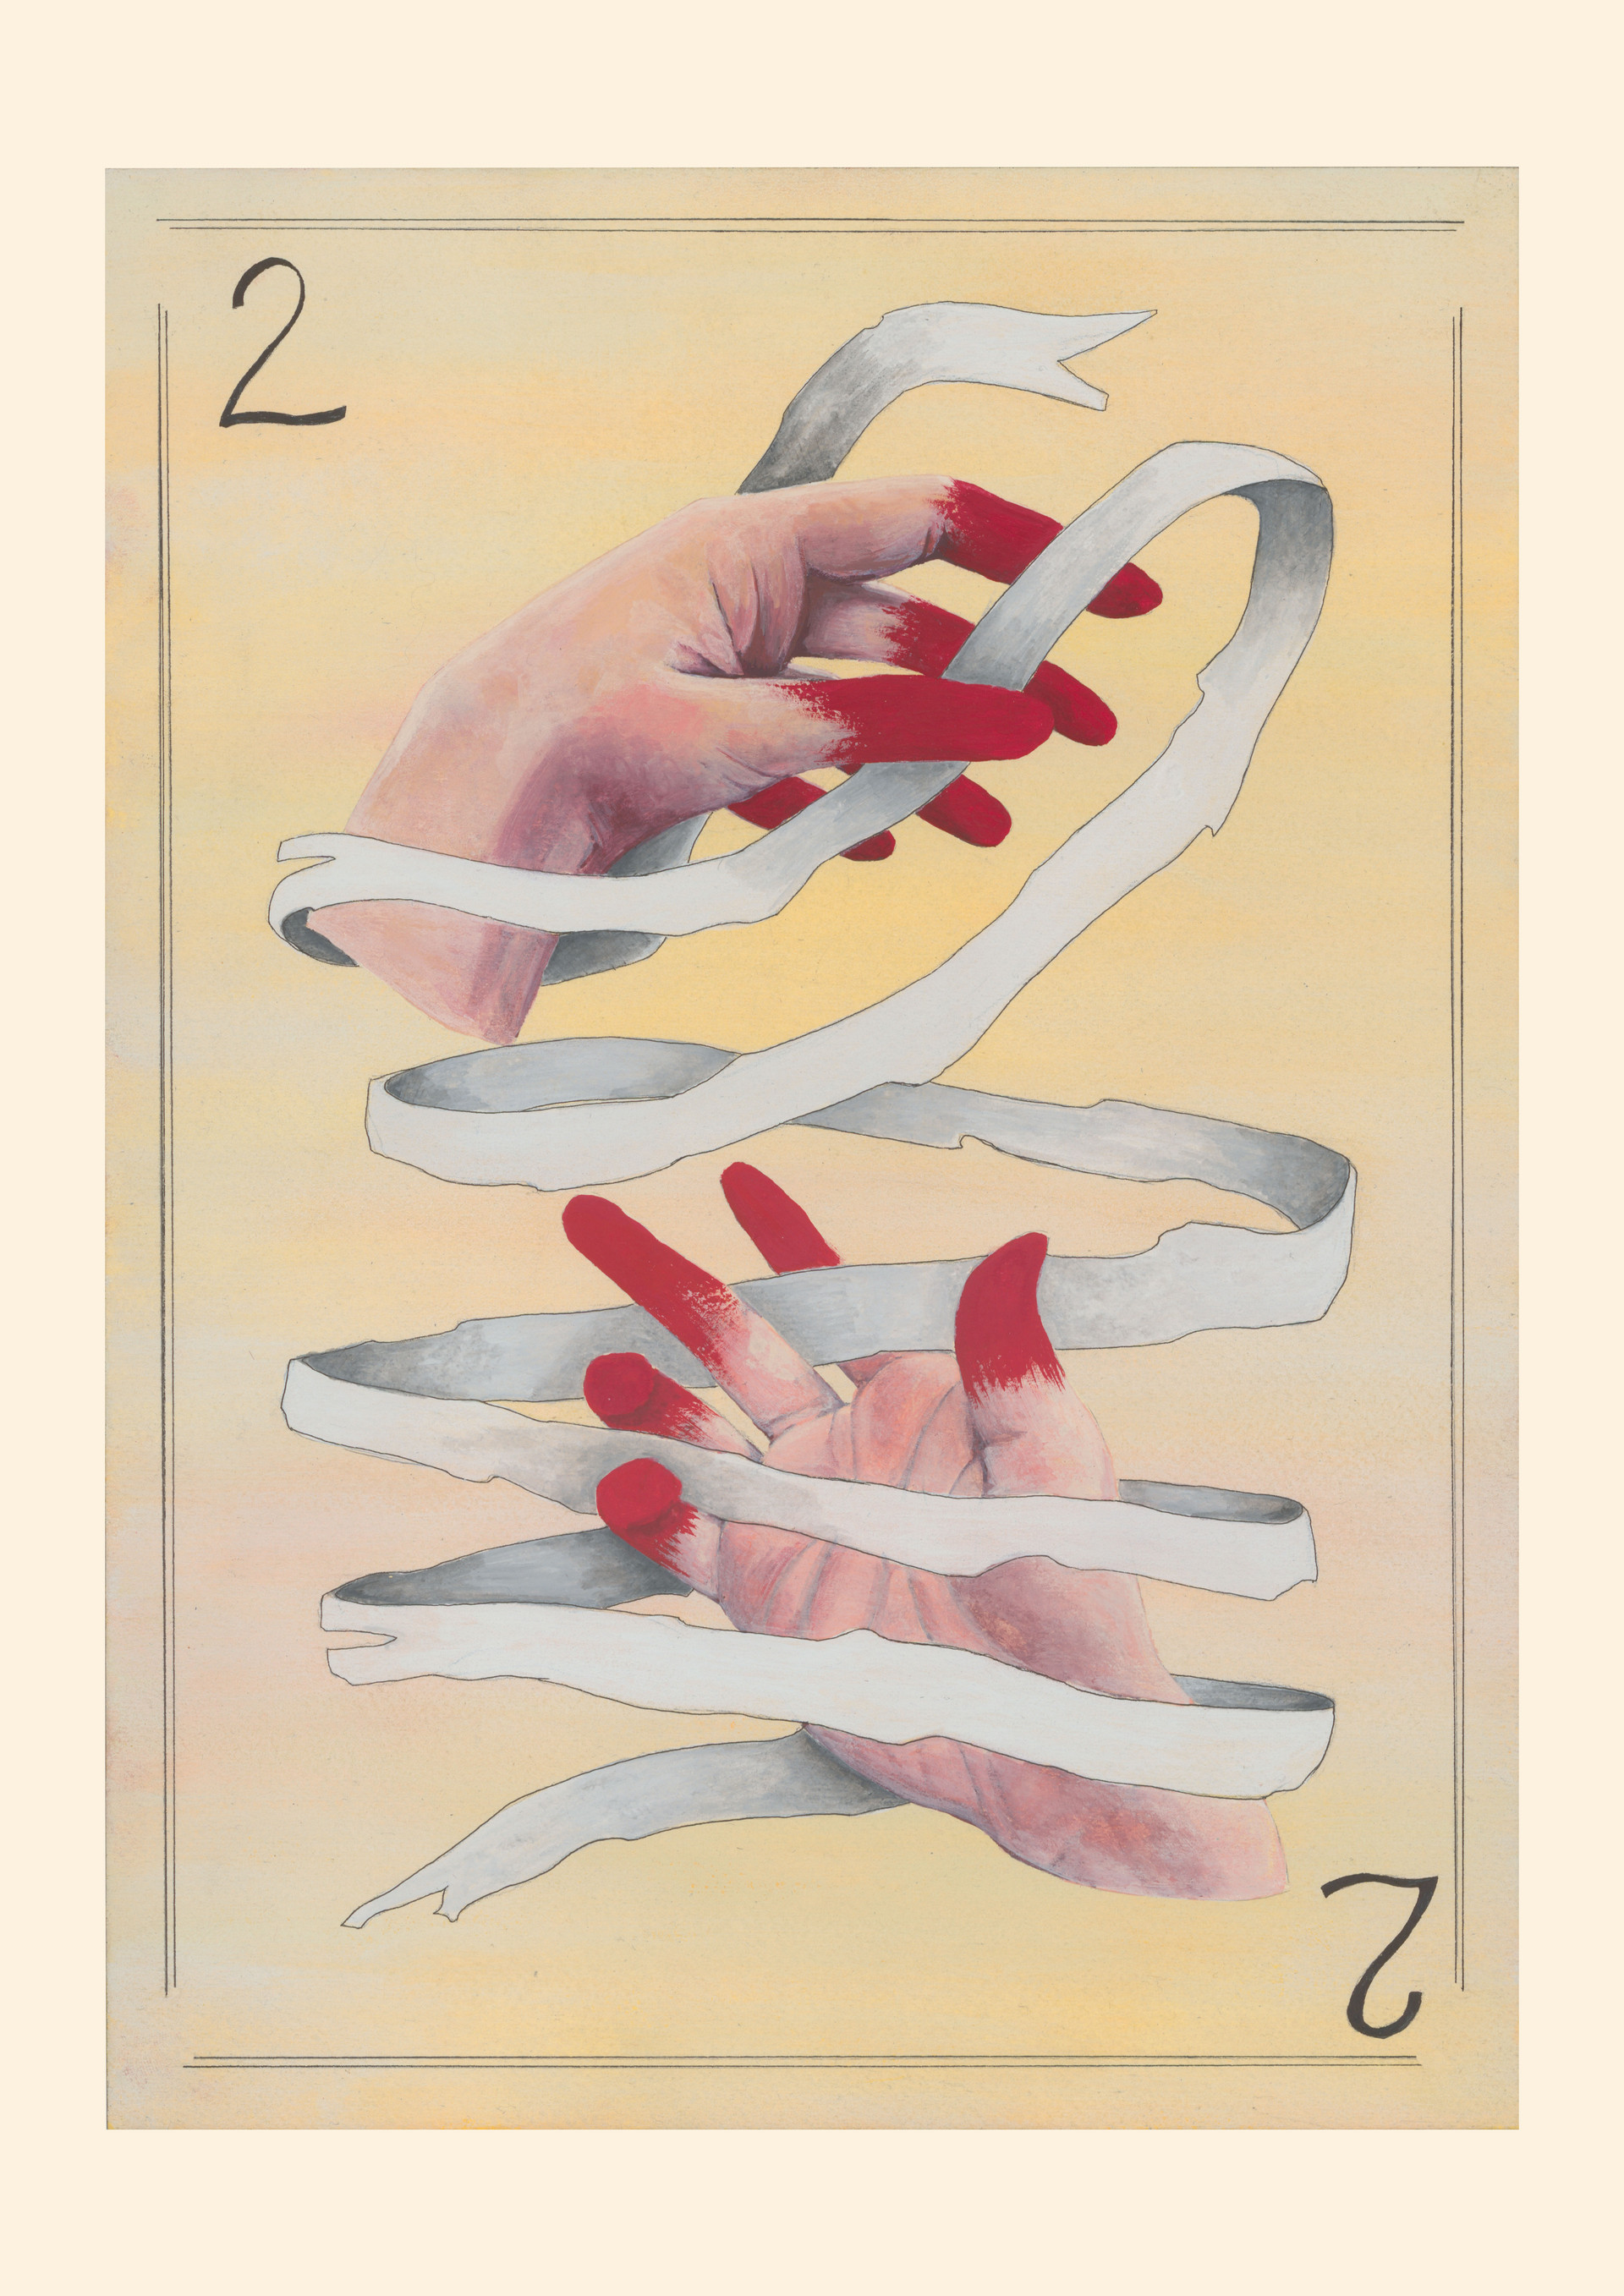 'The Two of Hands'